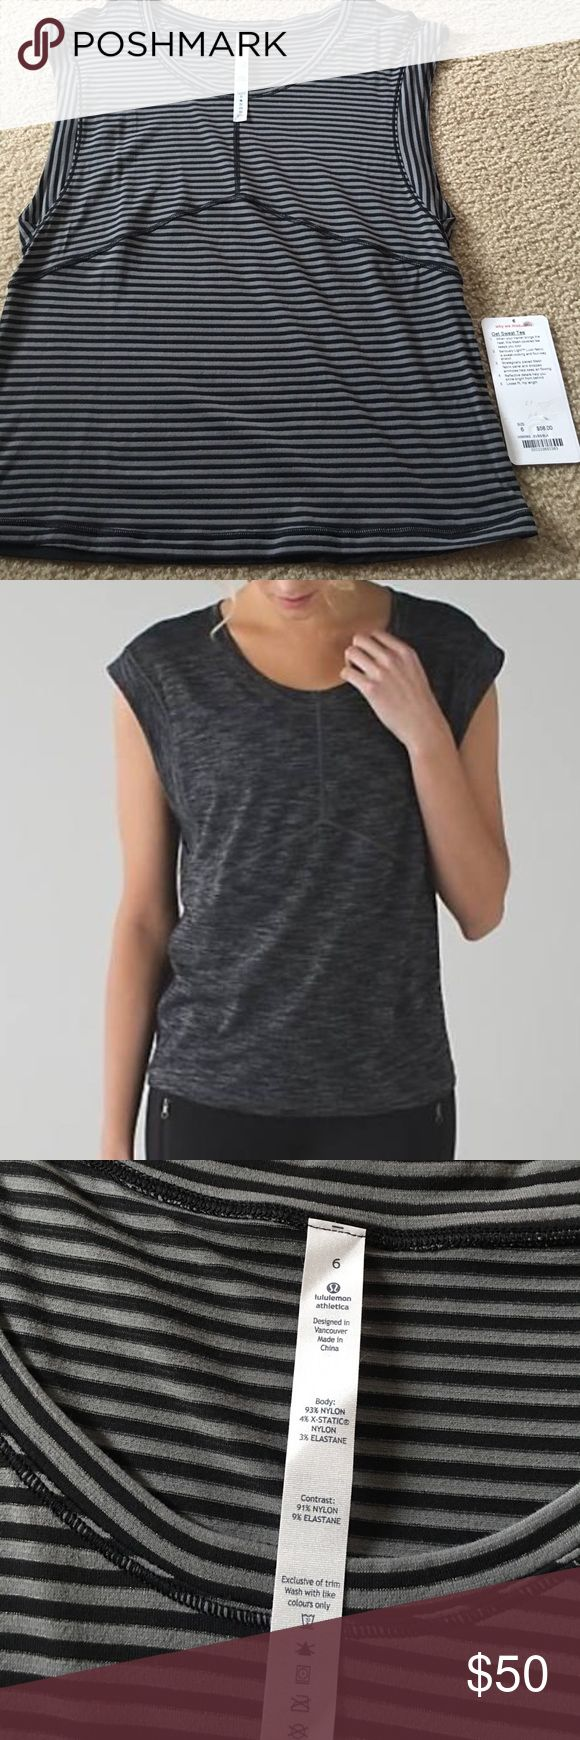 Lululemon Get Sweat Tee! New with tags! Lululemon Get Sweat Tee. Brand new with tags. Size 6. Originally bought for 58, selling for clearance price I paid 50. Perfect for those sweaty workouts! Offers welcome. lululemon athletica Tops Tees - Short Sleeve